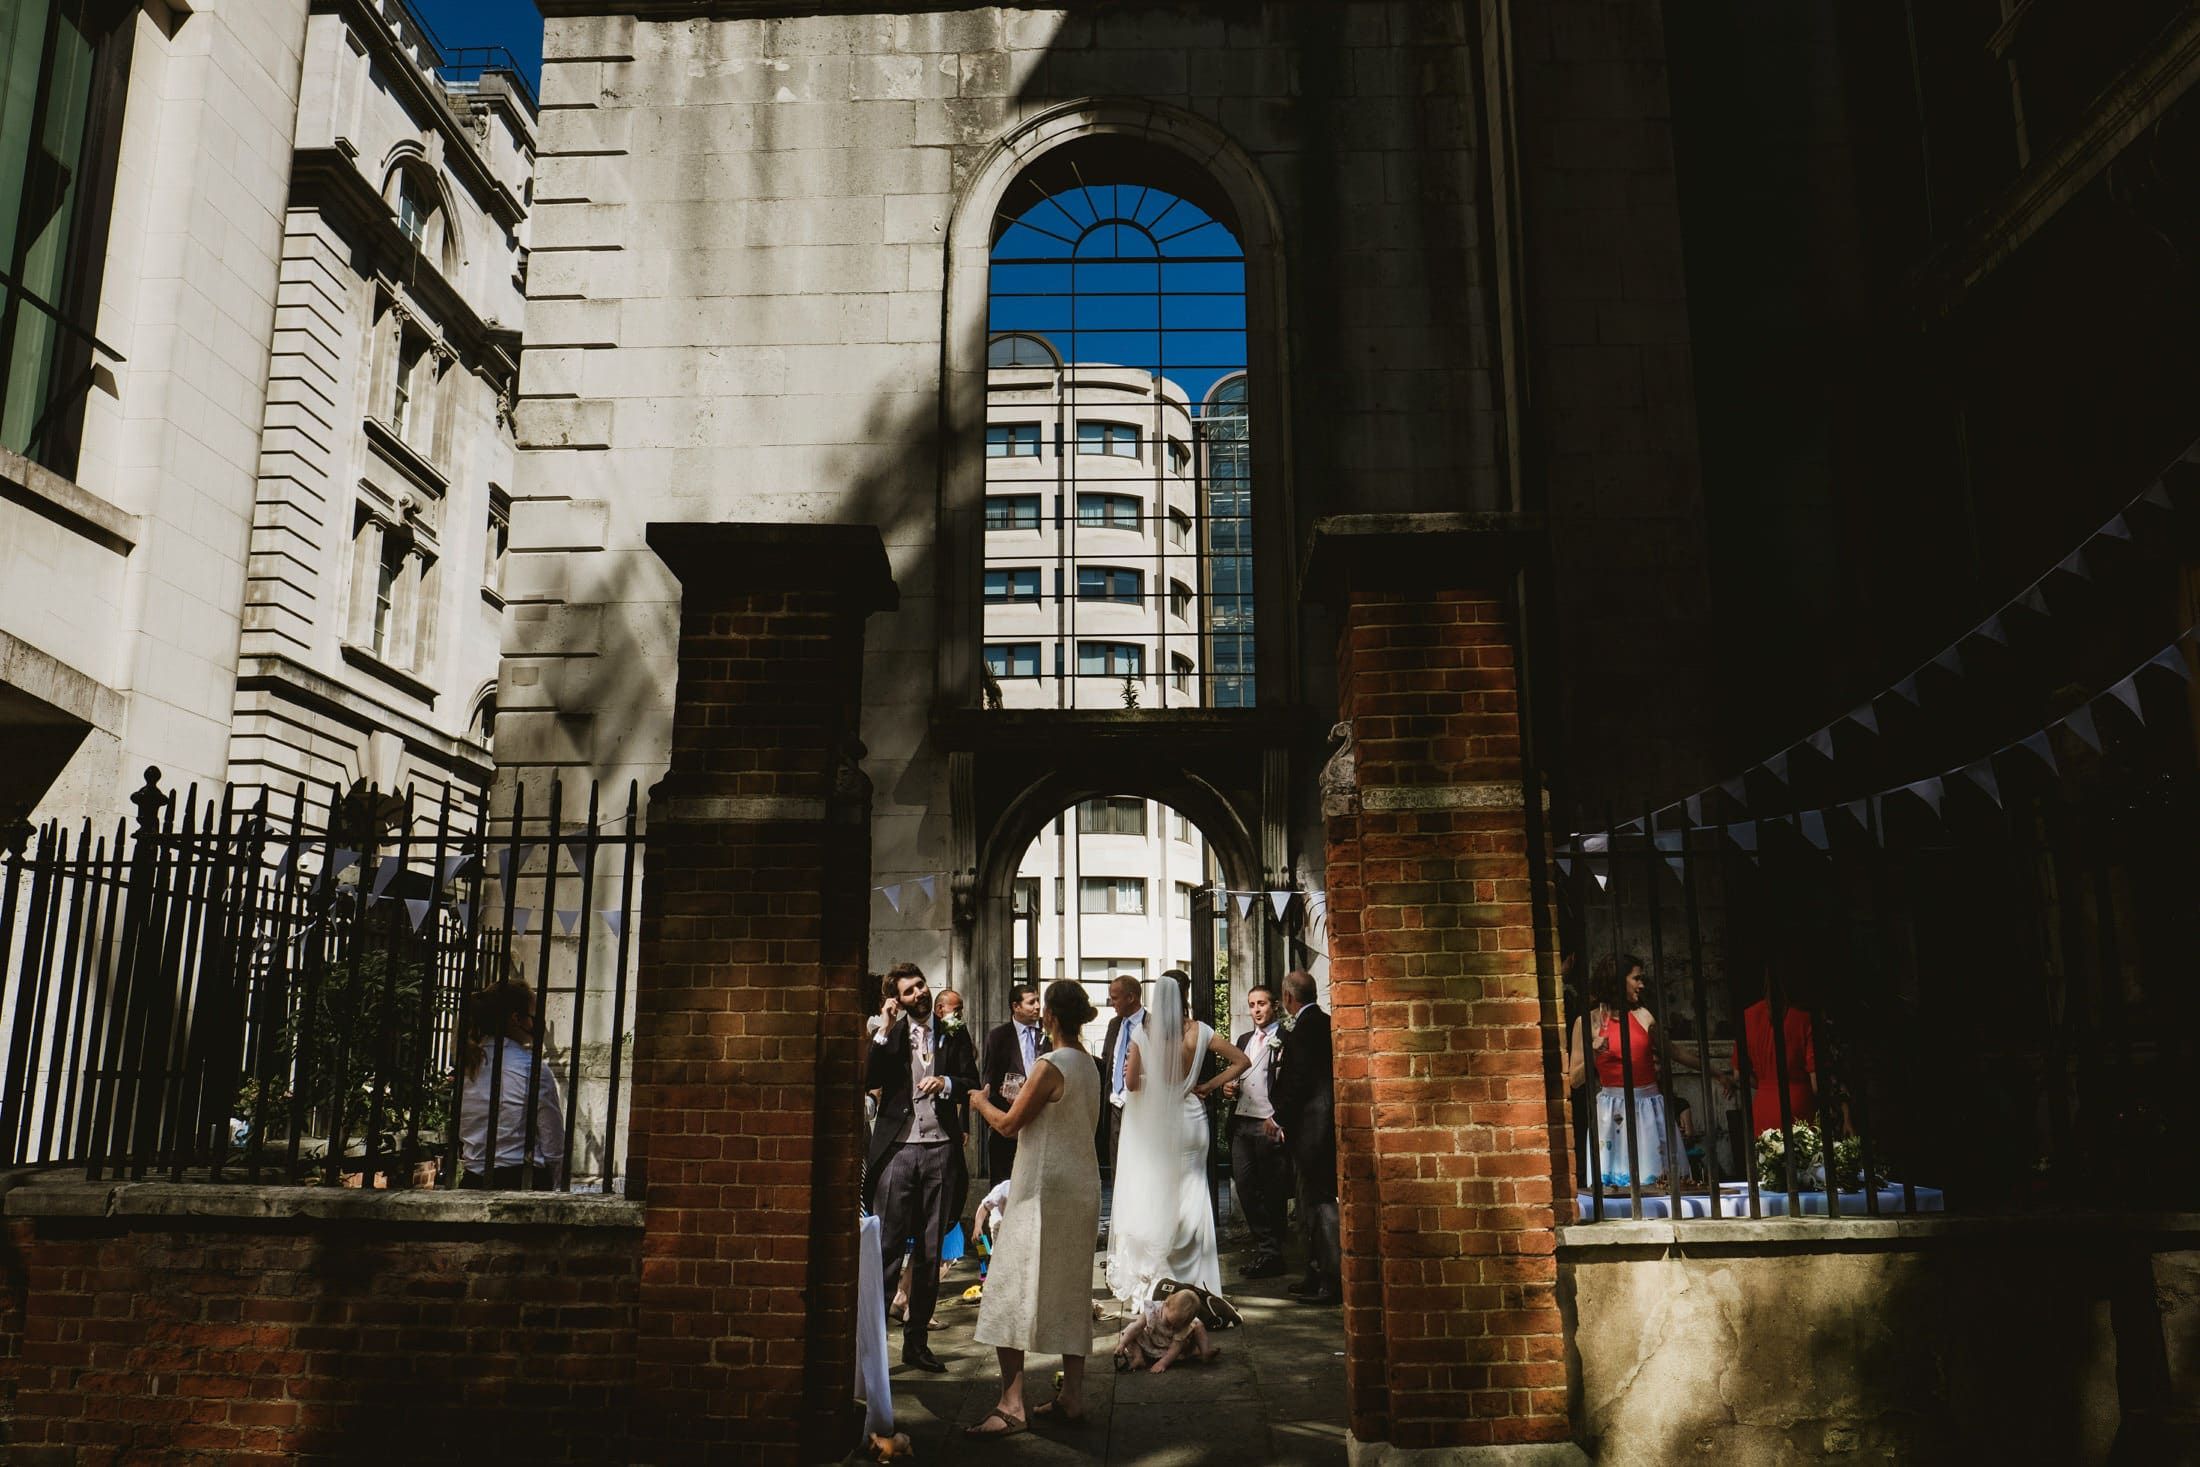 Intimate micro wedding reception in Greyfriars Passage London